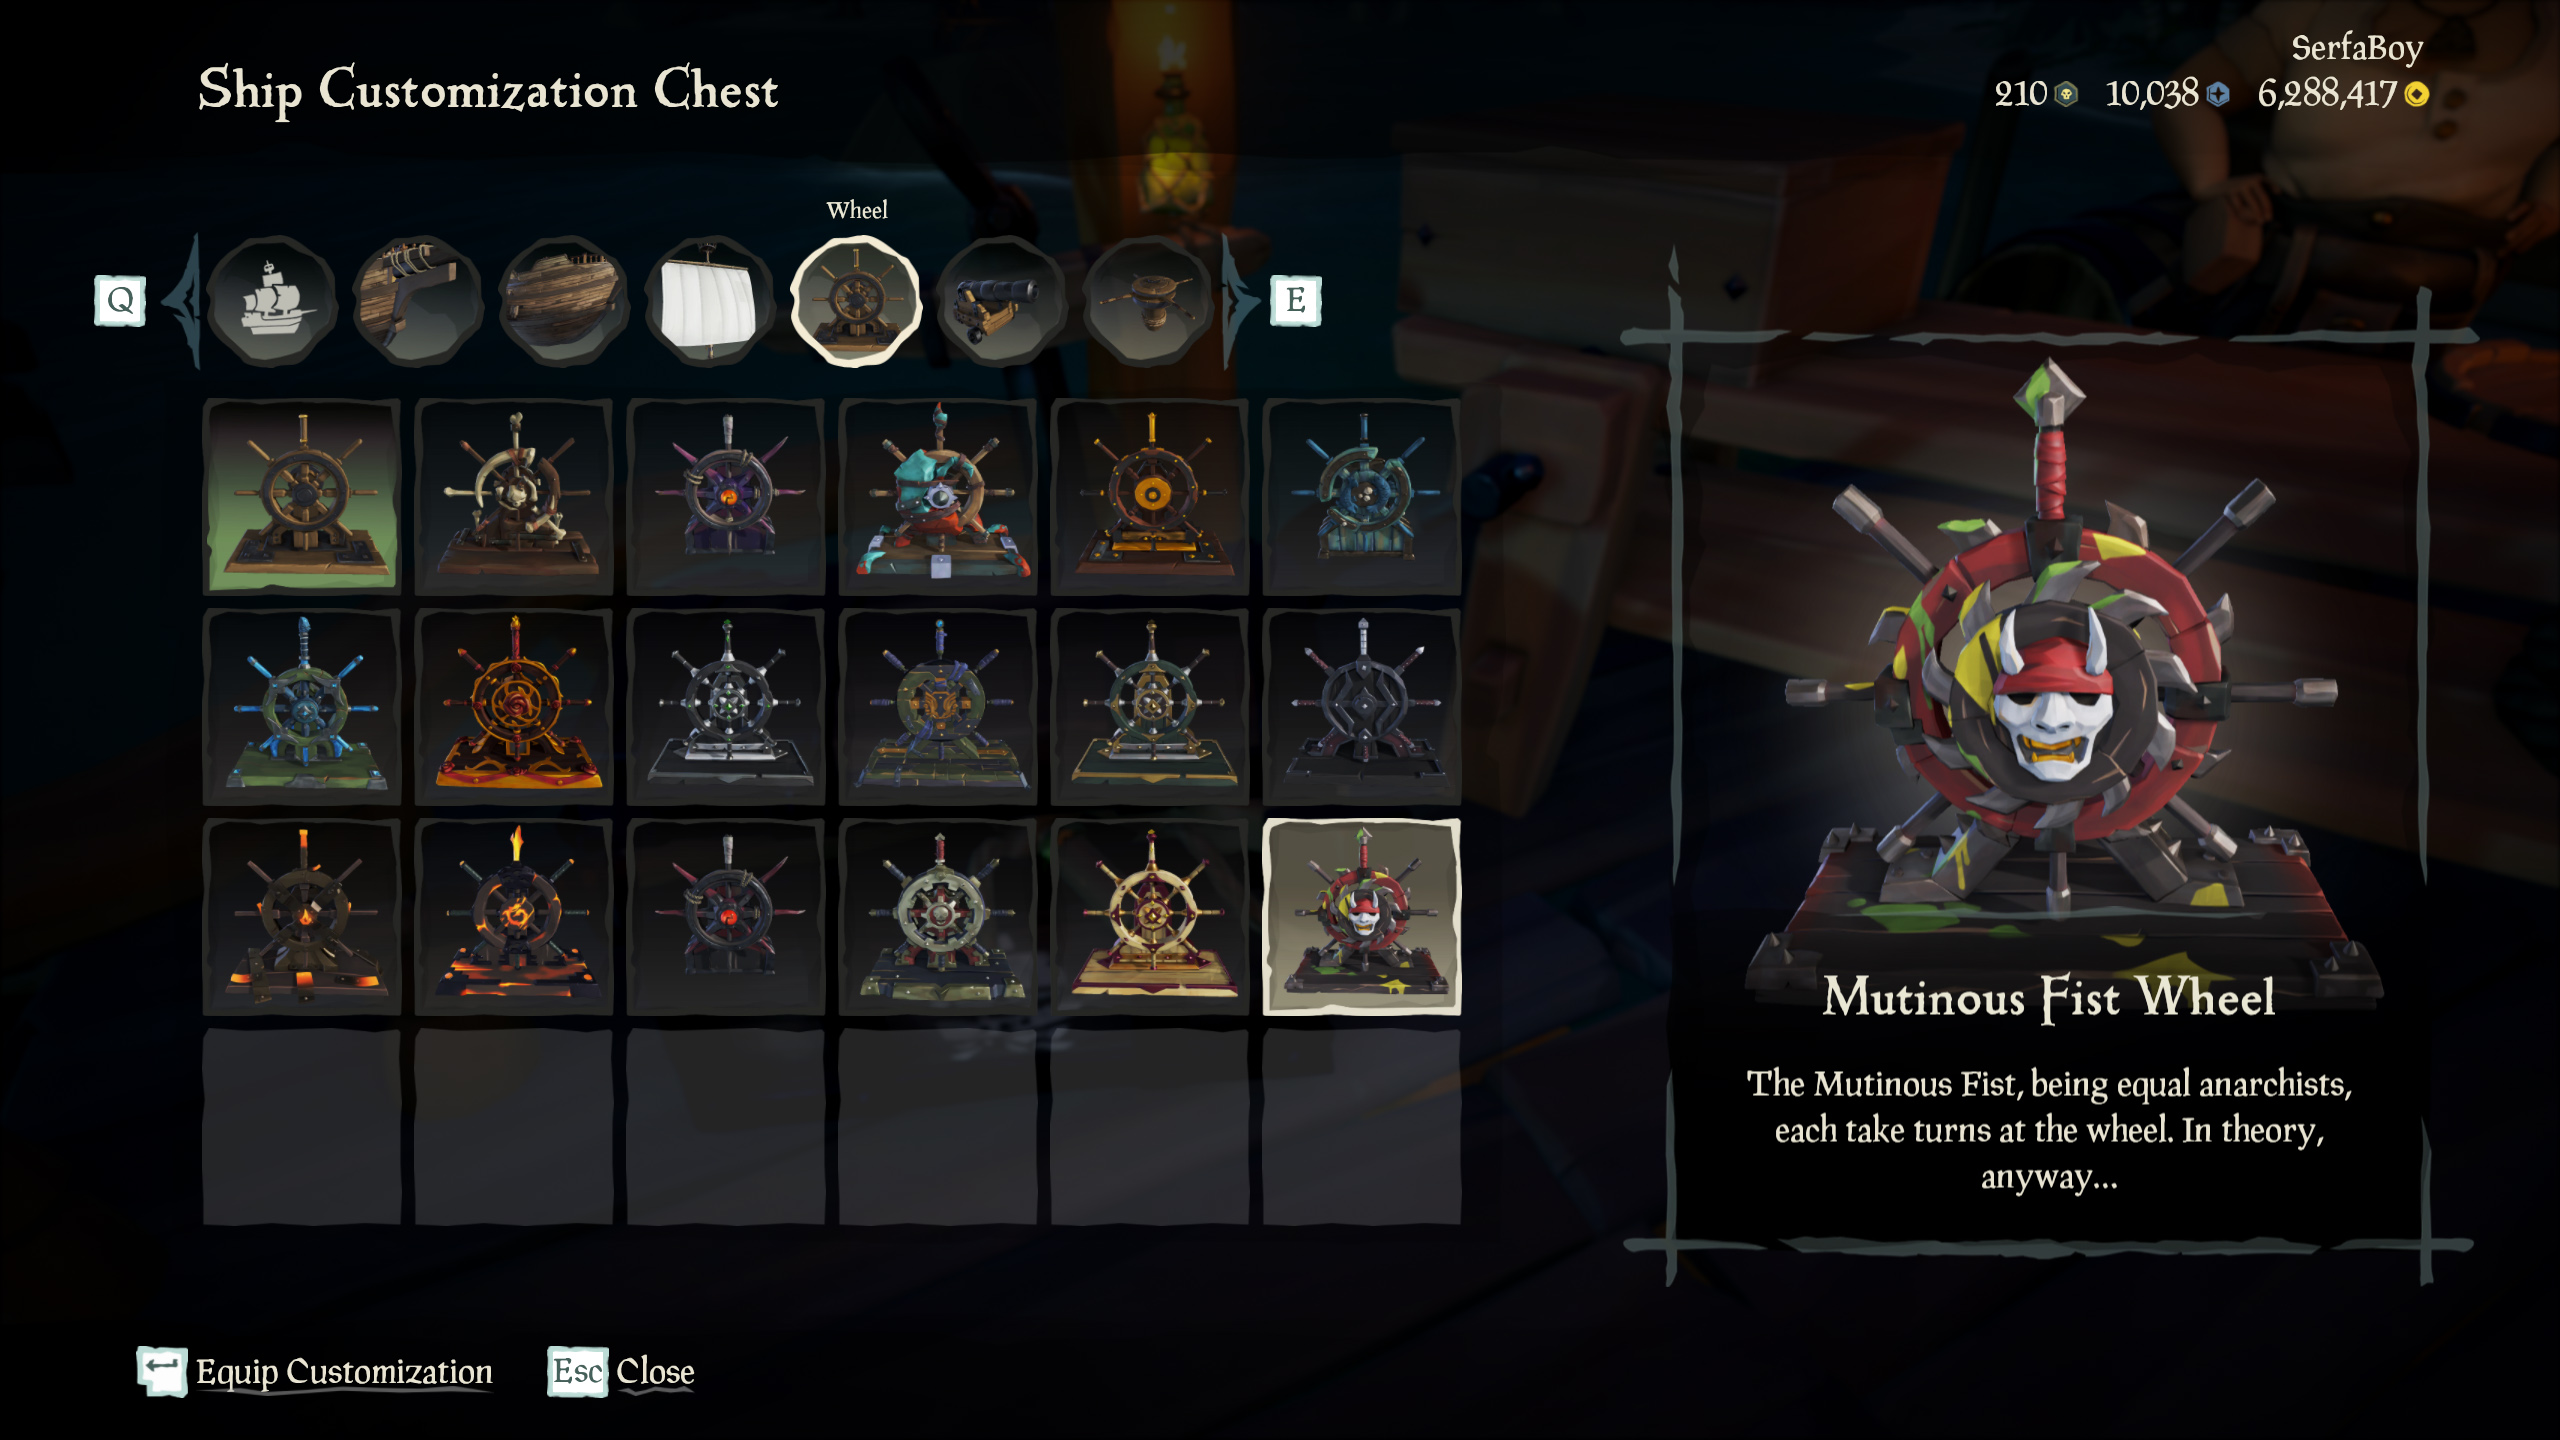 Sea of Thieves June Twitch Drops Mutinous Fist Wheel